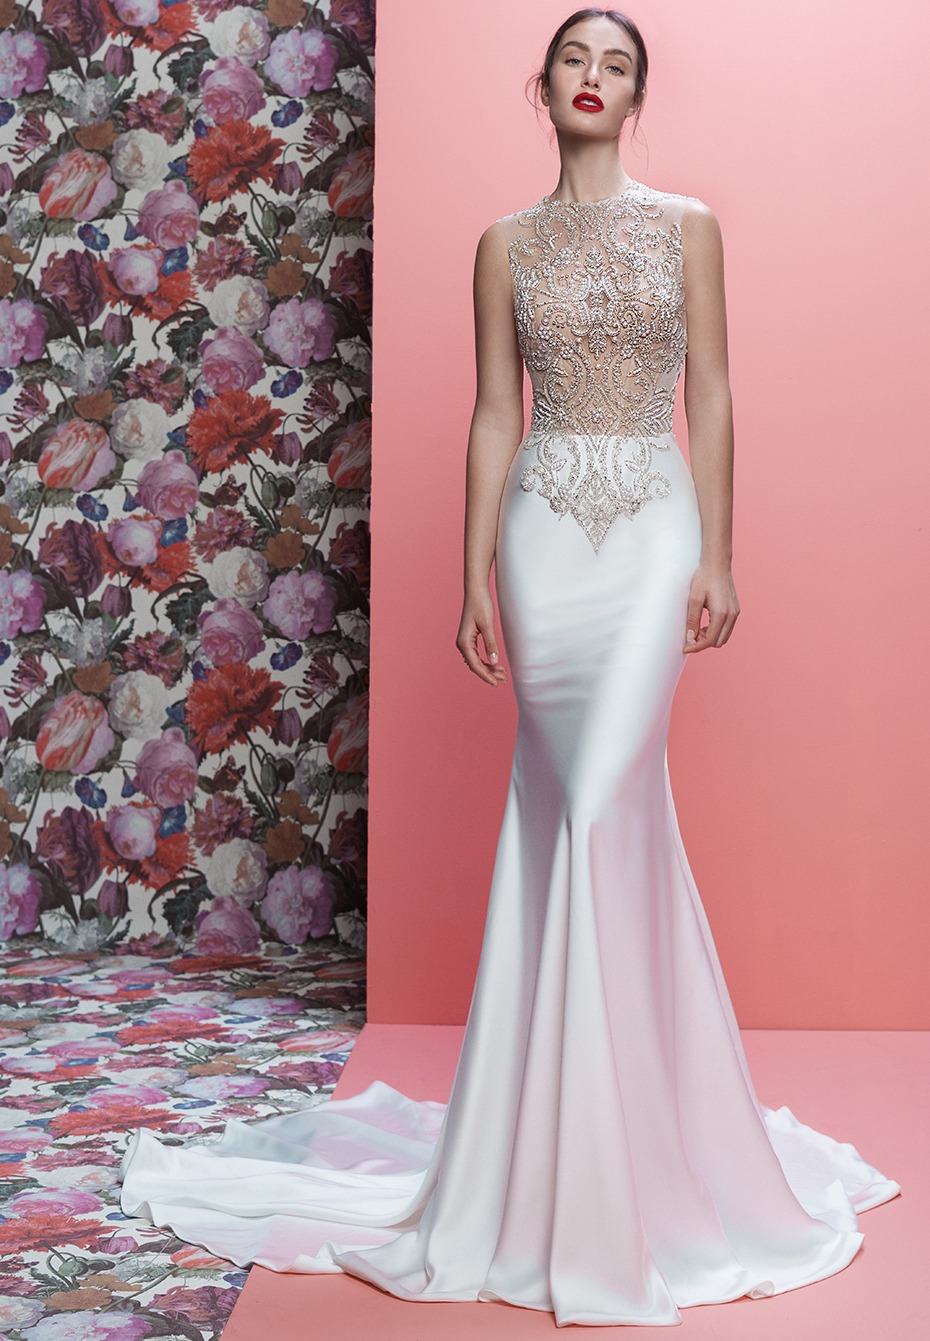 White wedding gown with intricate detail. The Emeryson by Galia Lahav